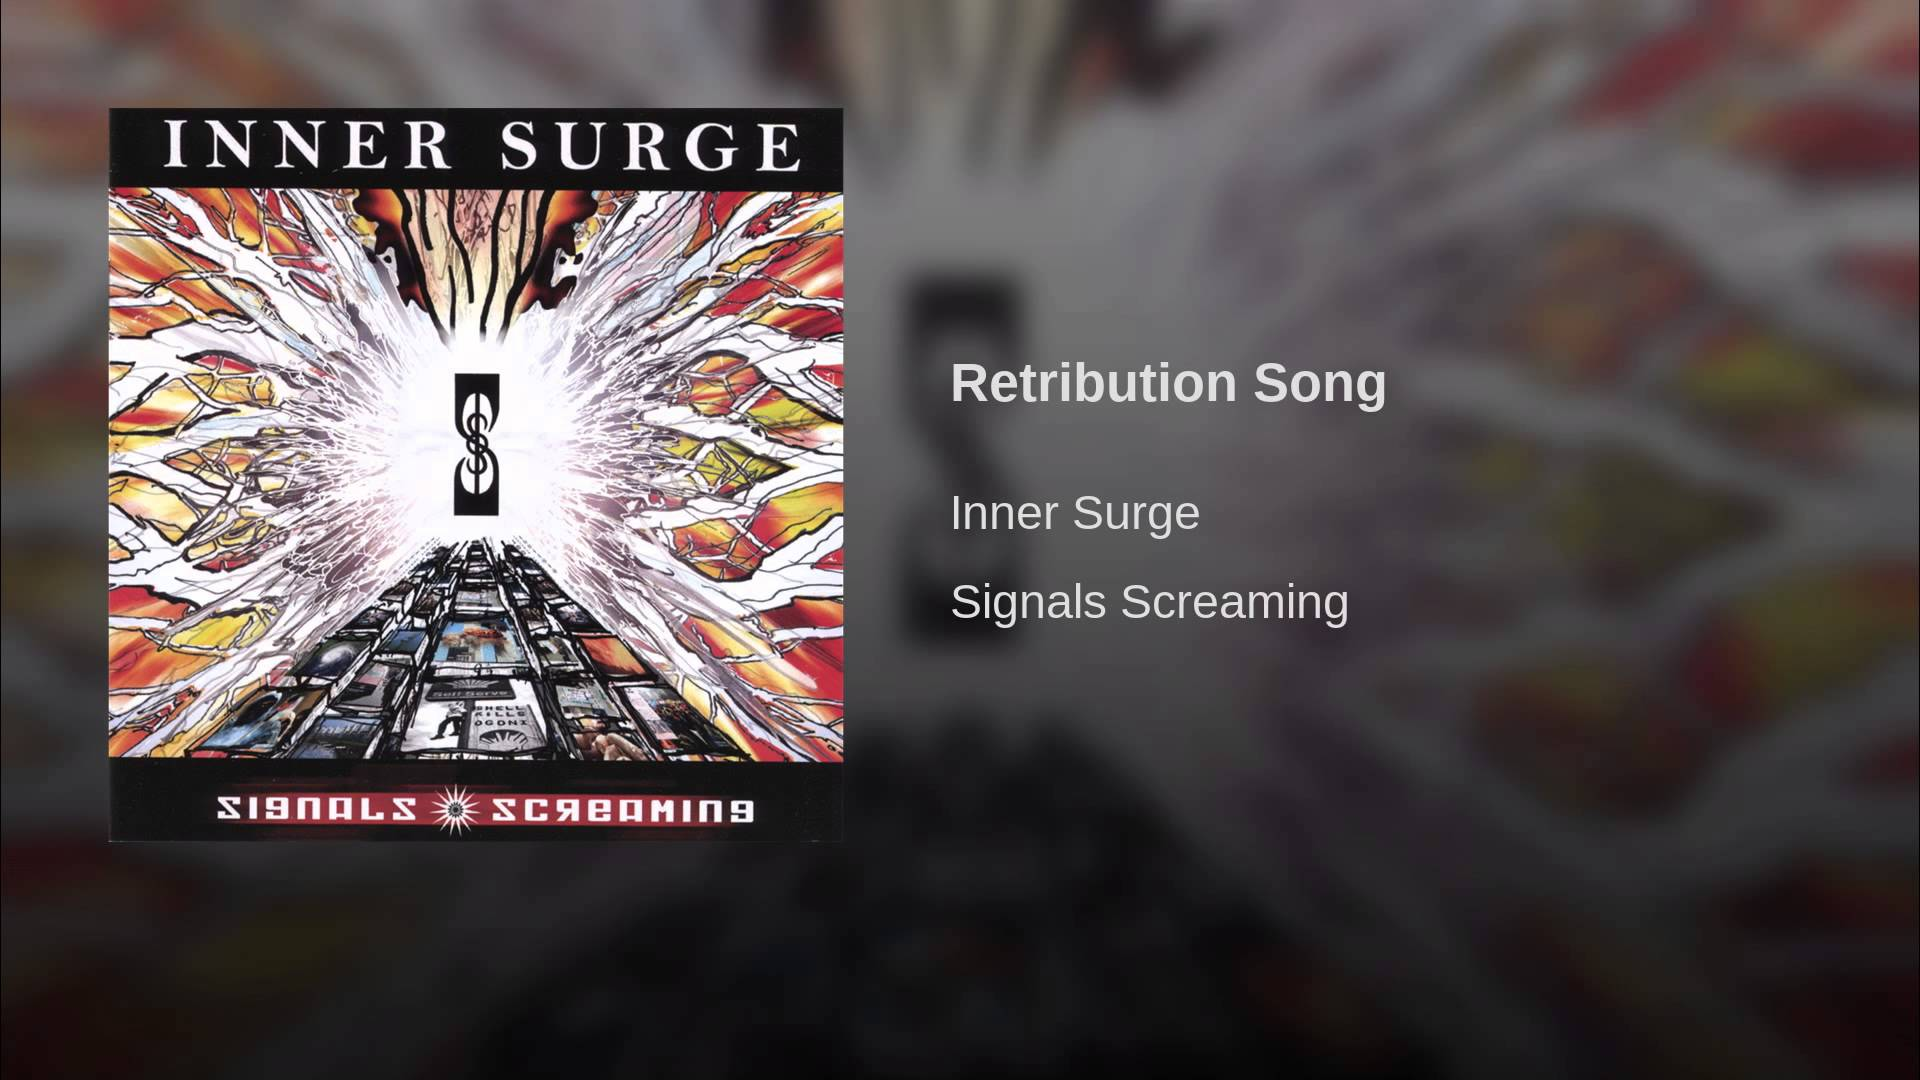 Signals Screaming by Inner Surge